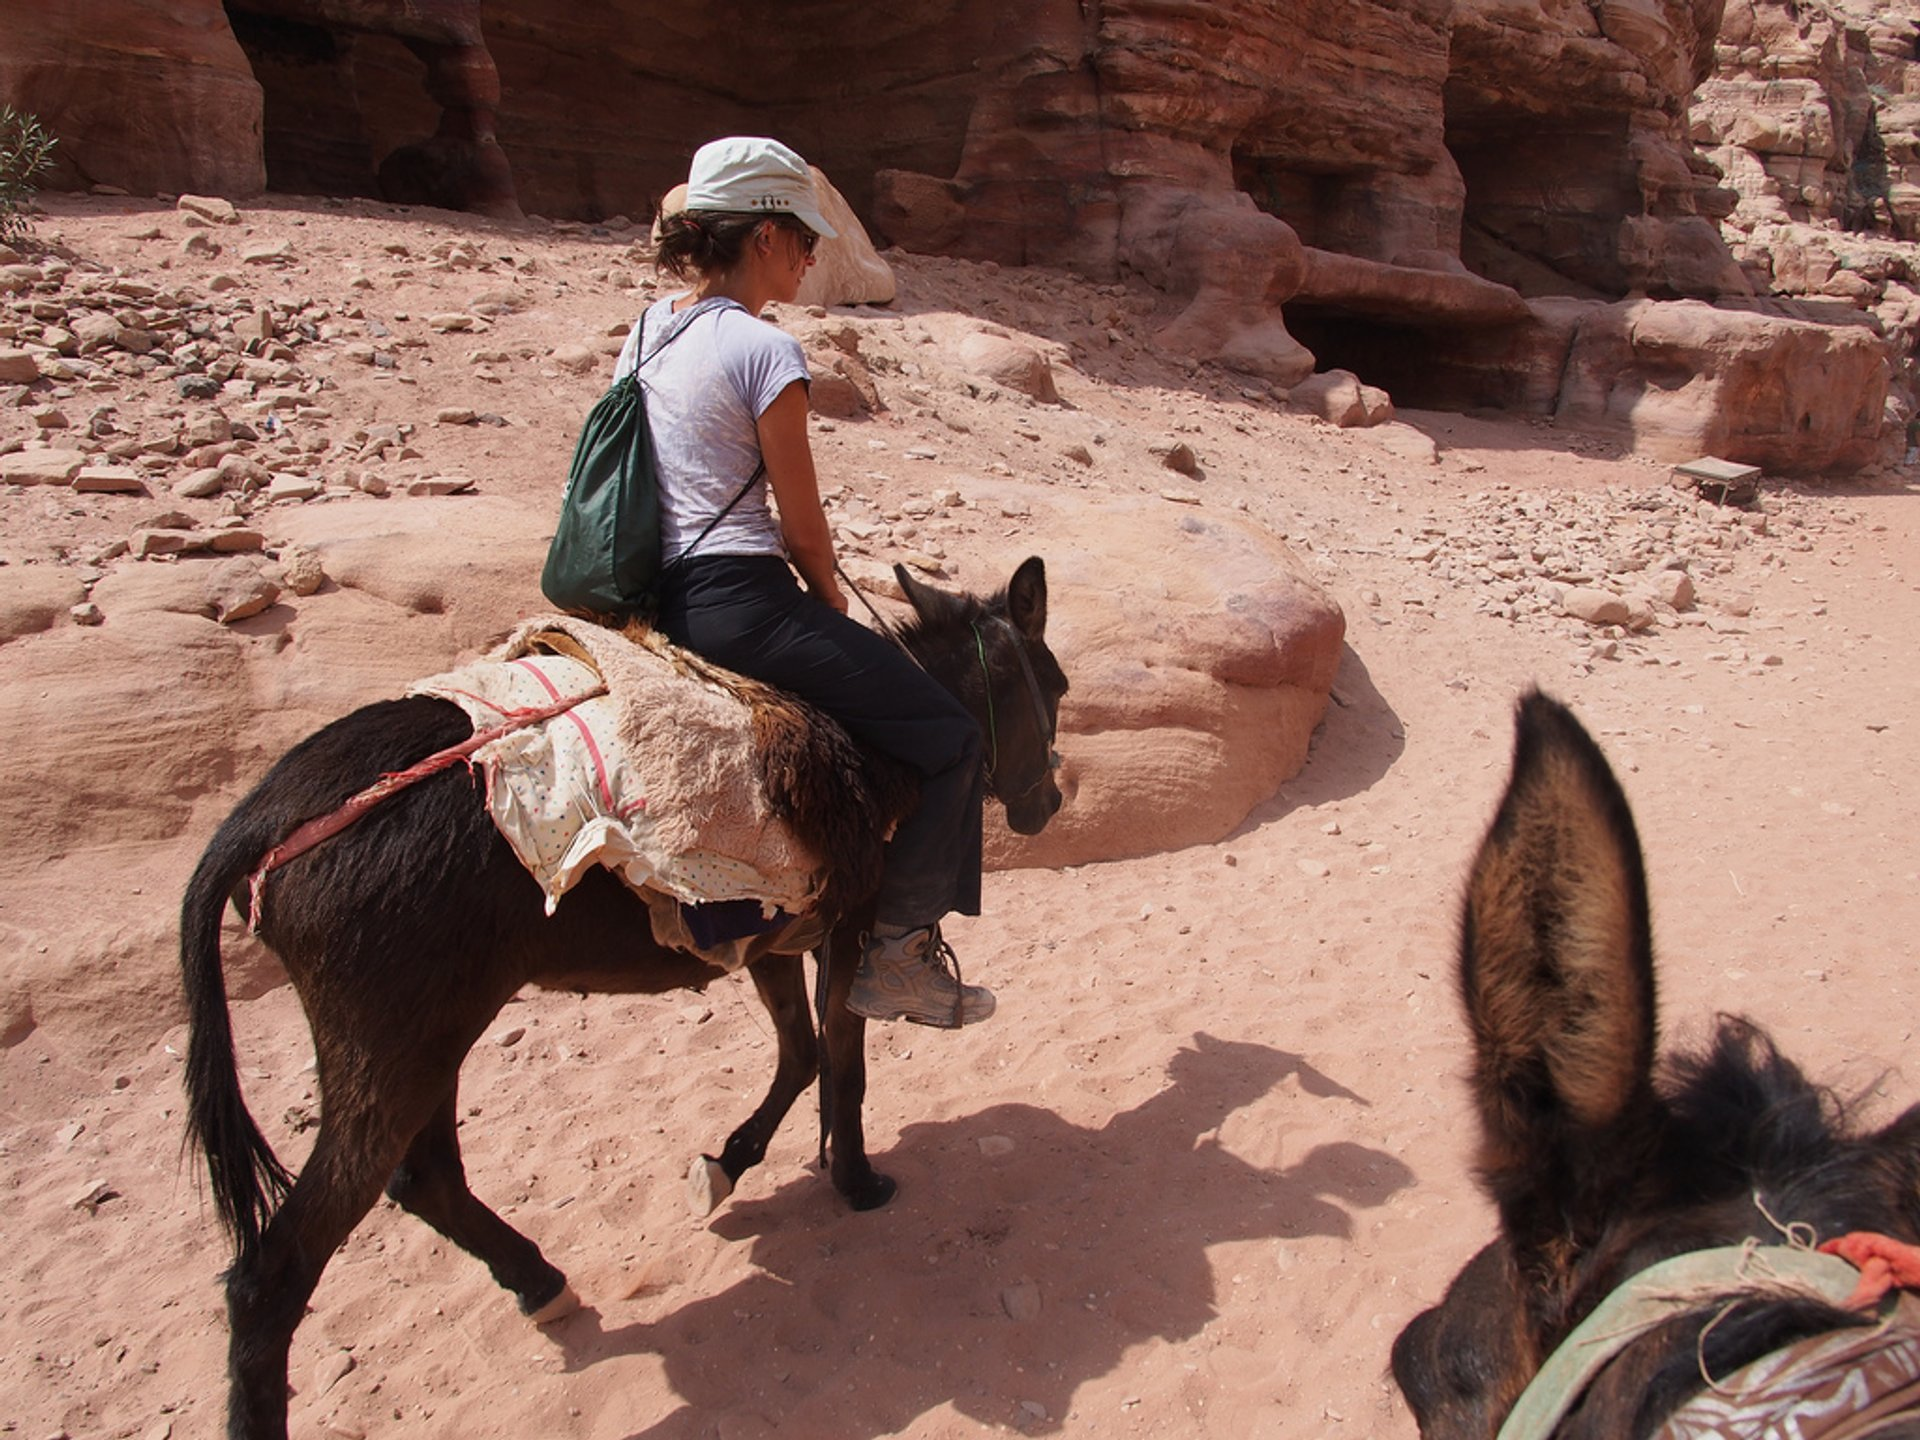 Donkey Ride in Jordan - Best Season 2020